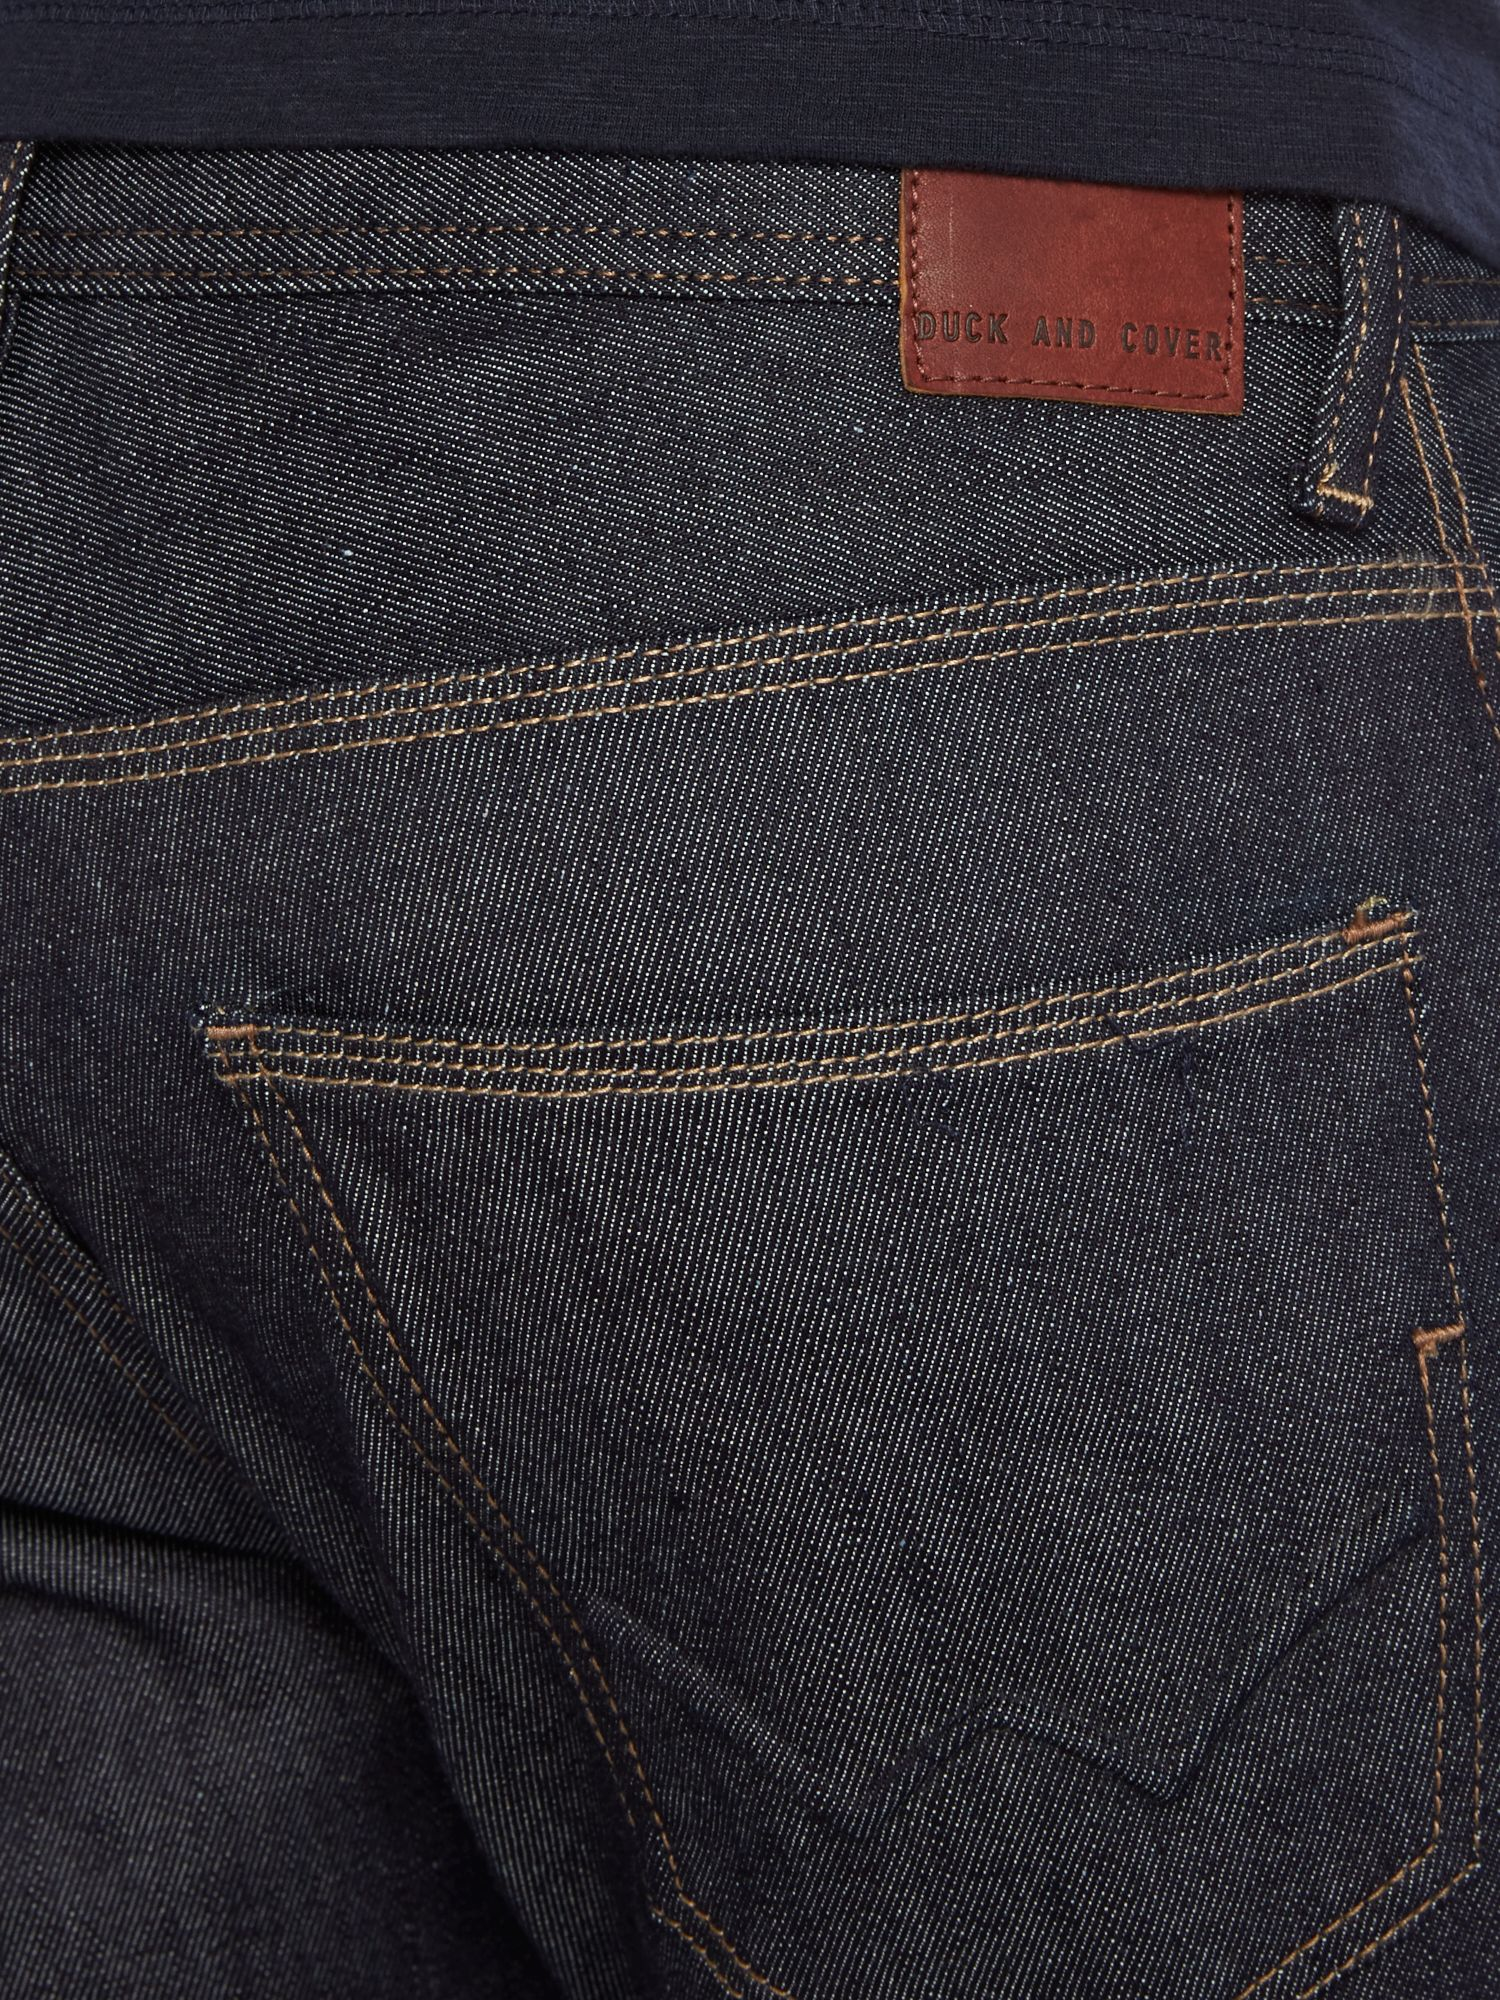 Duck and Cover Denim Boxren Tapered Jeans in Blue for Men